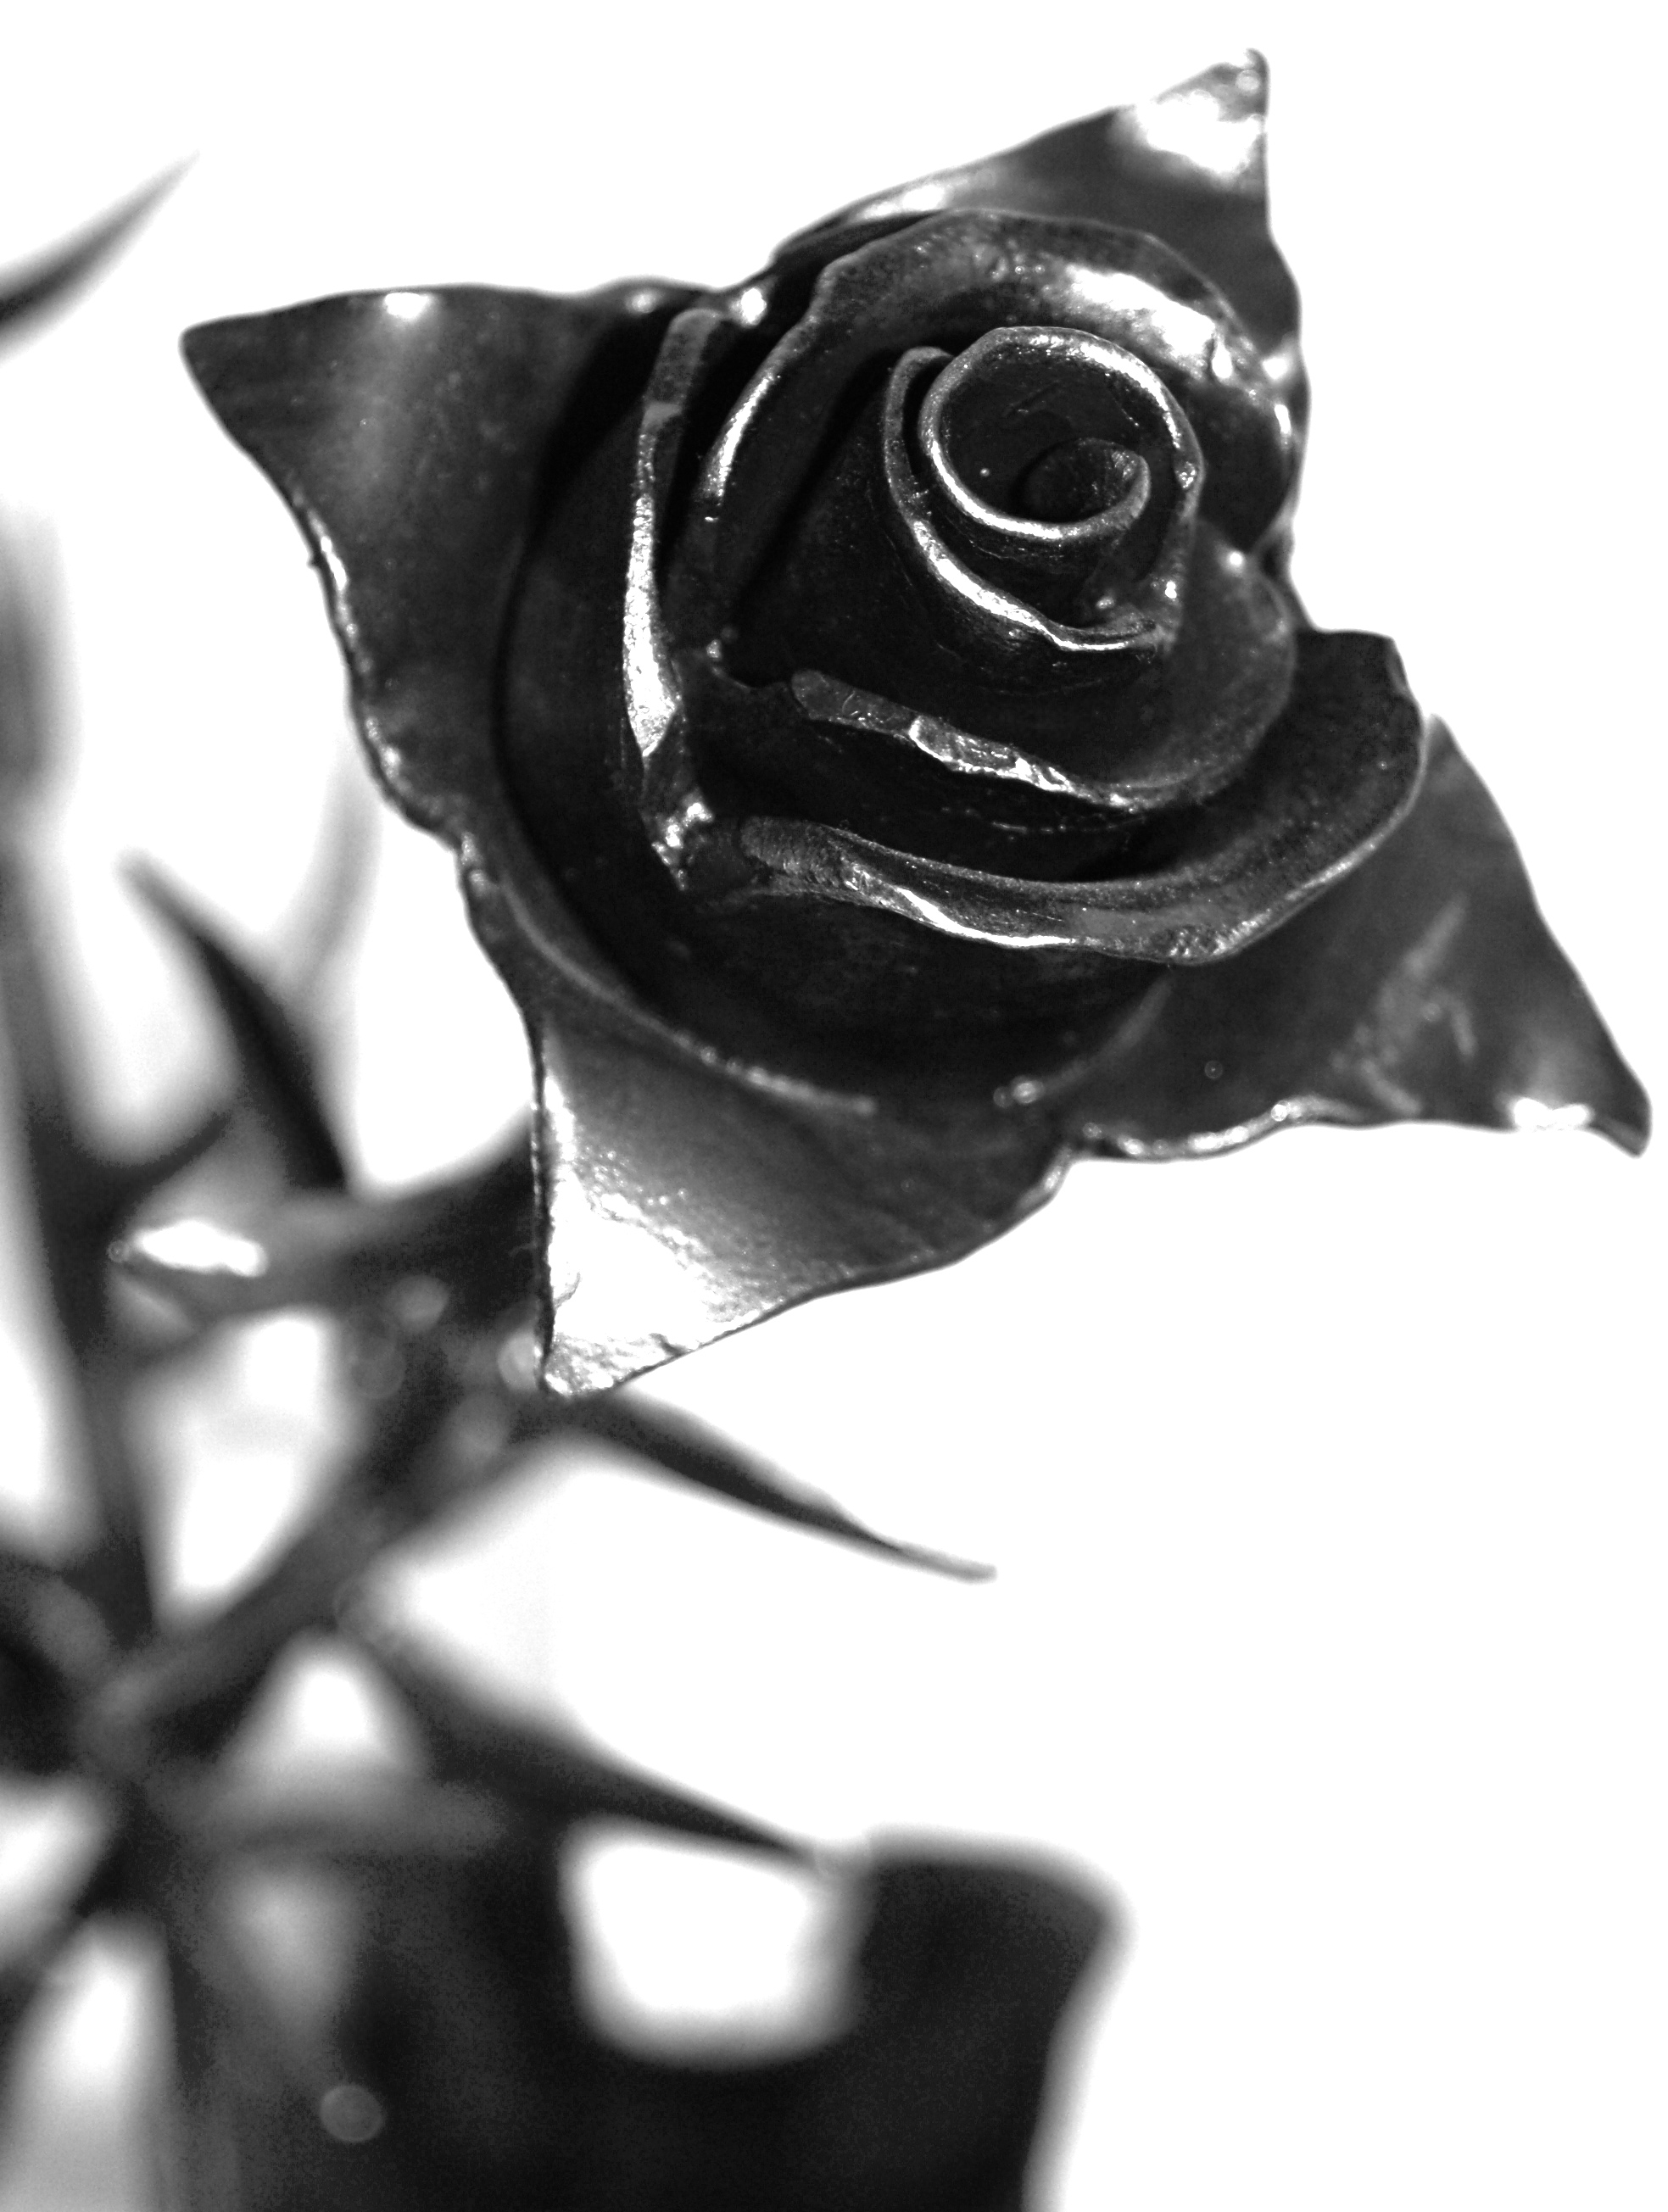 ROSE - component of candelabra